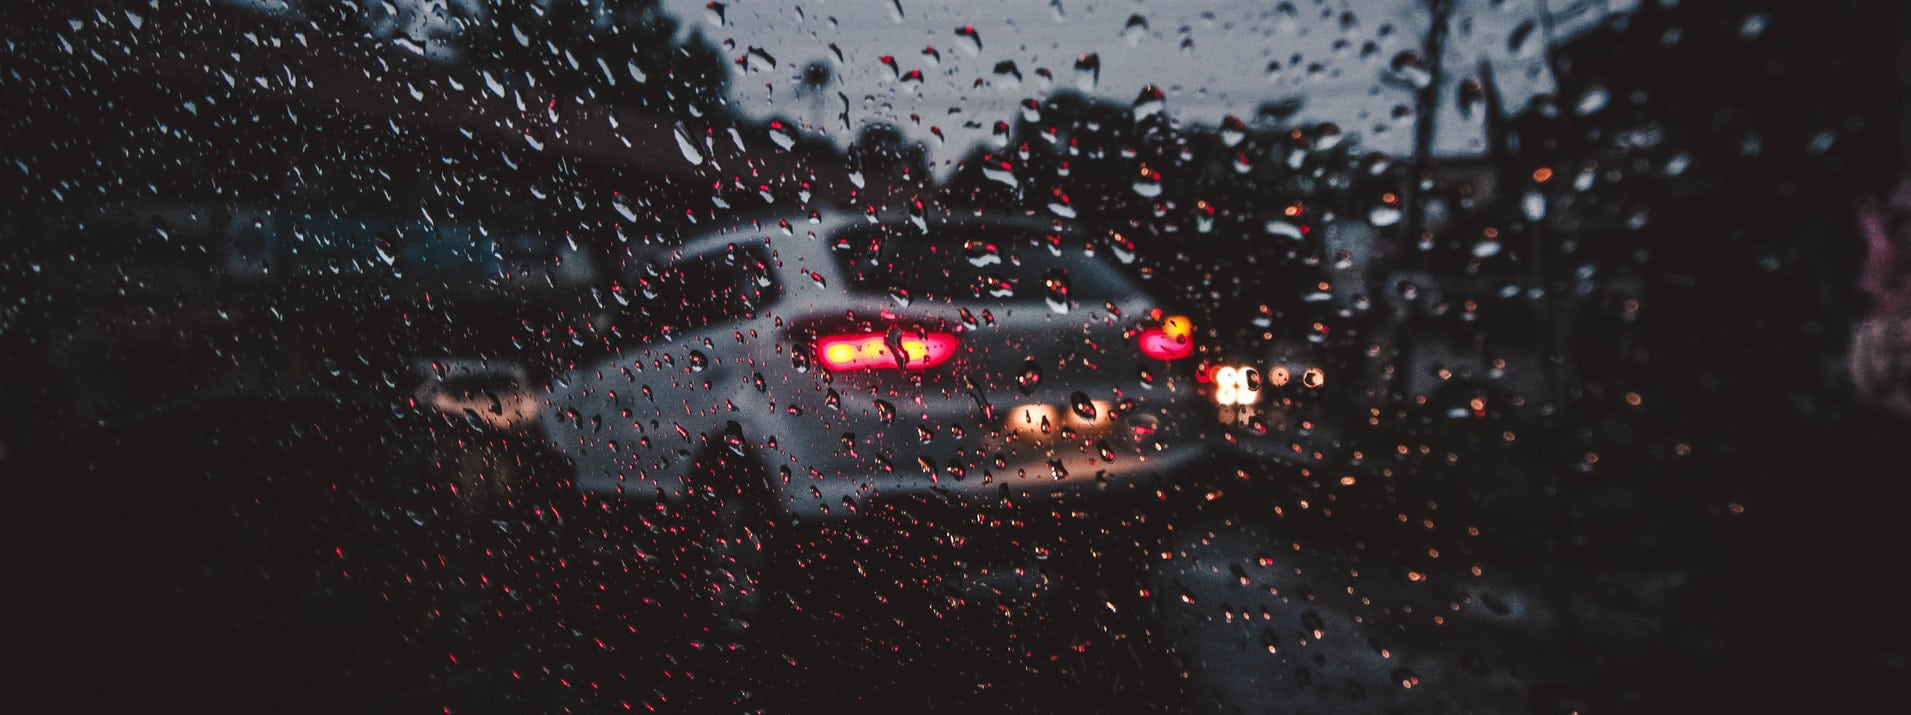 Extreme Driving Conditions: Rain & Fog mean Slow Down